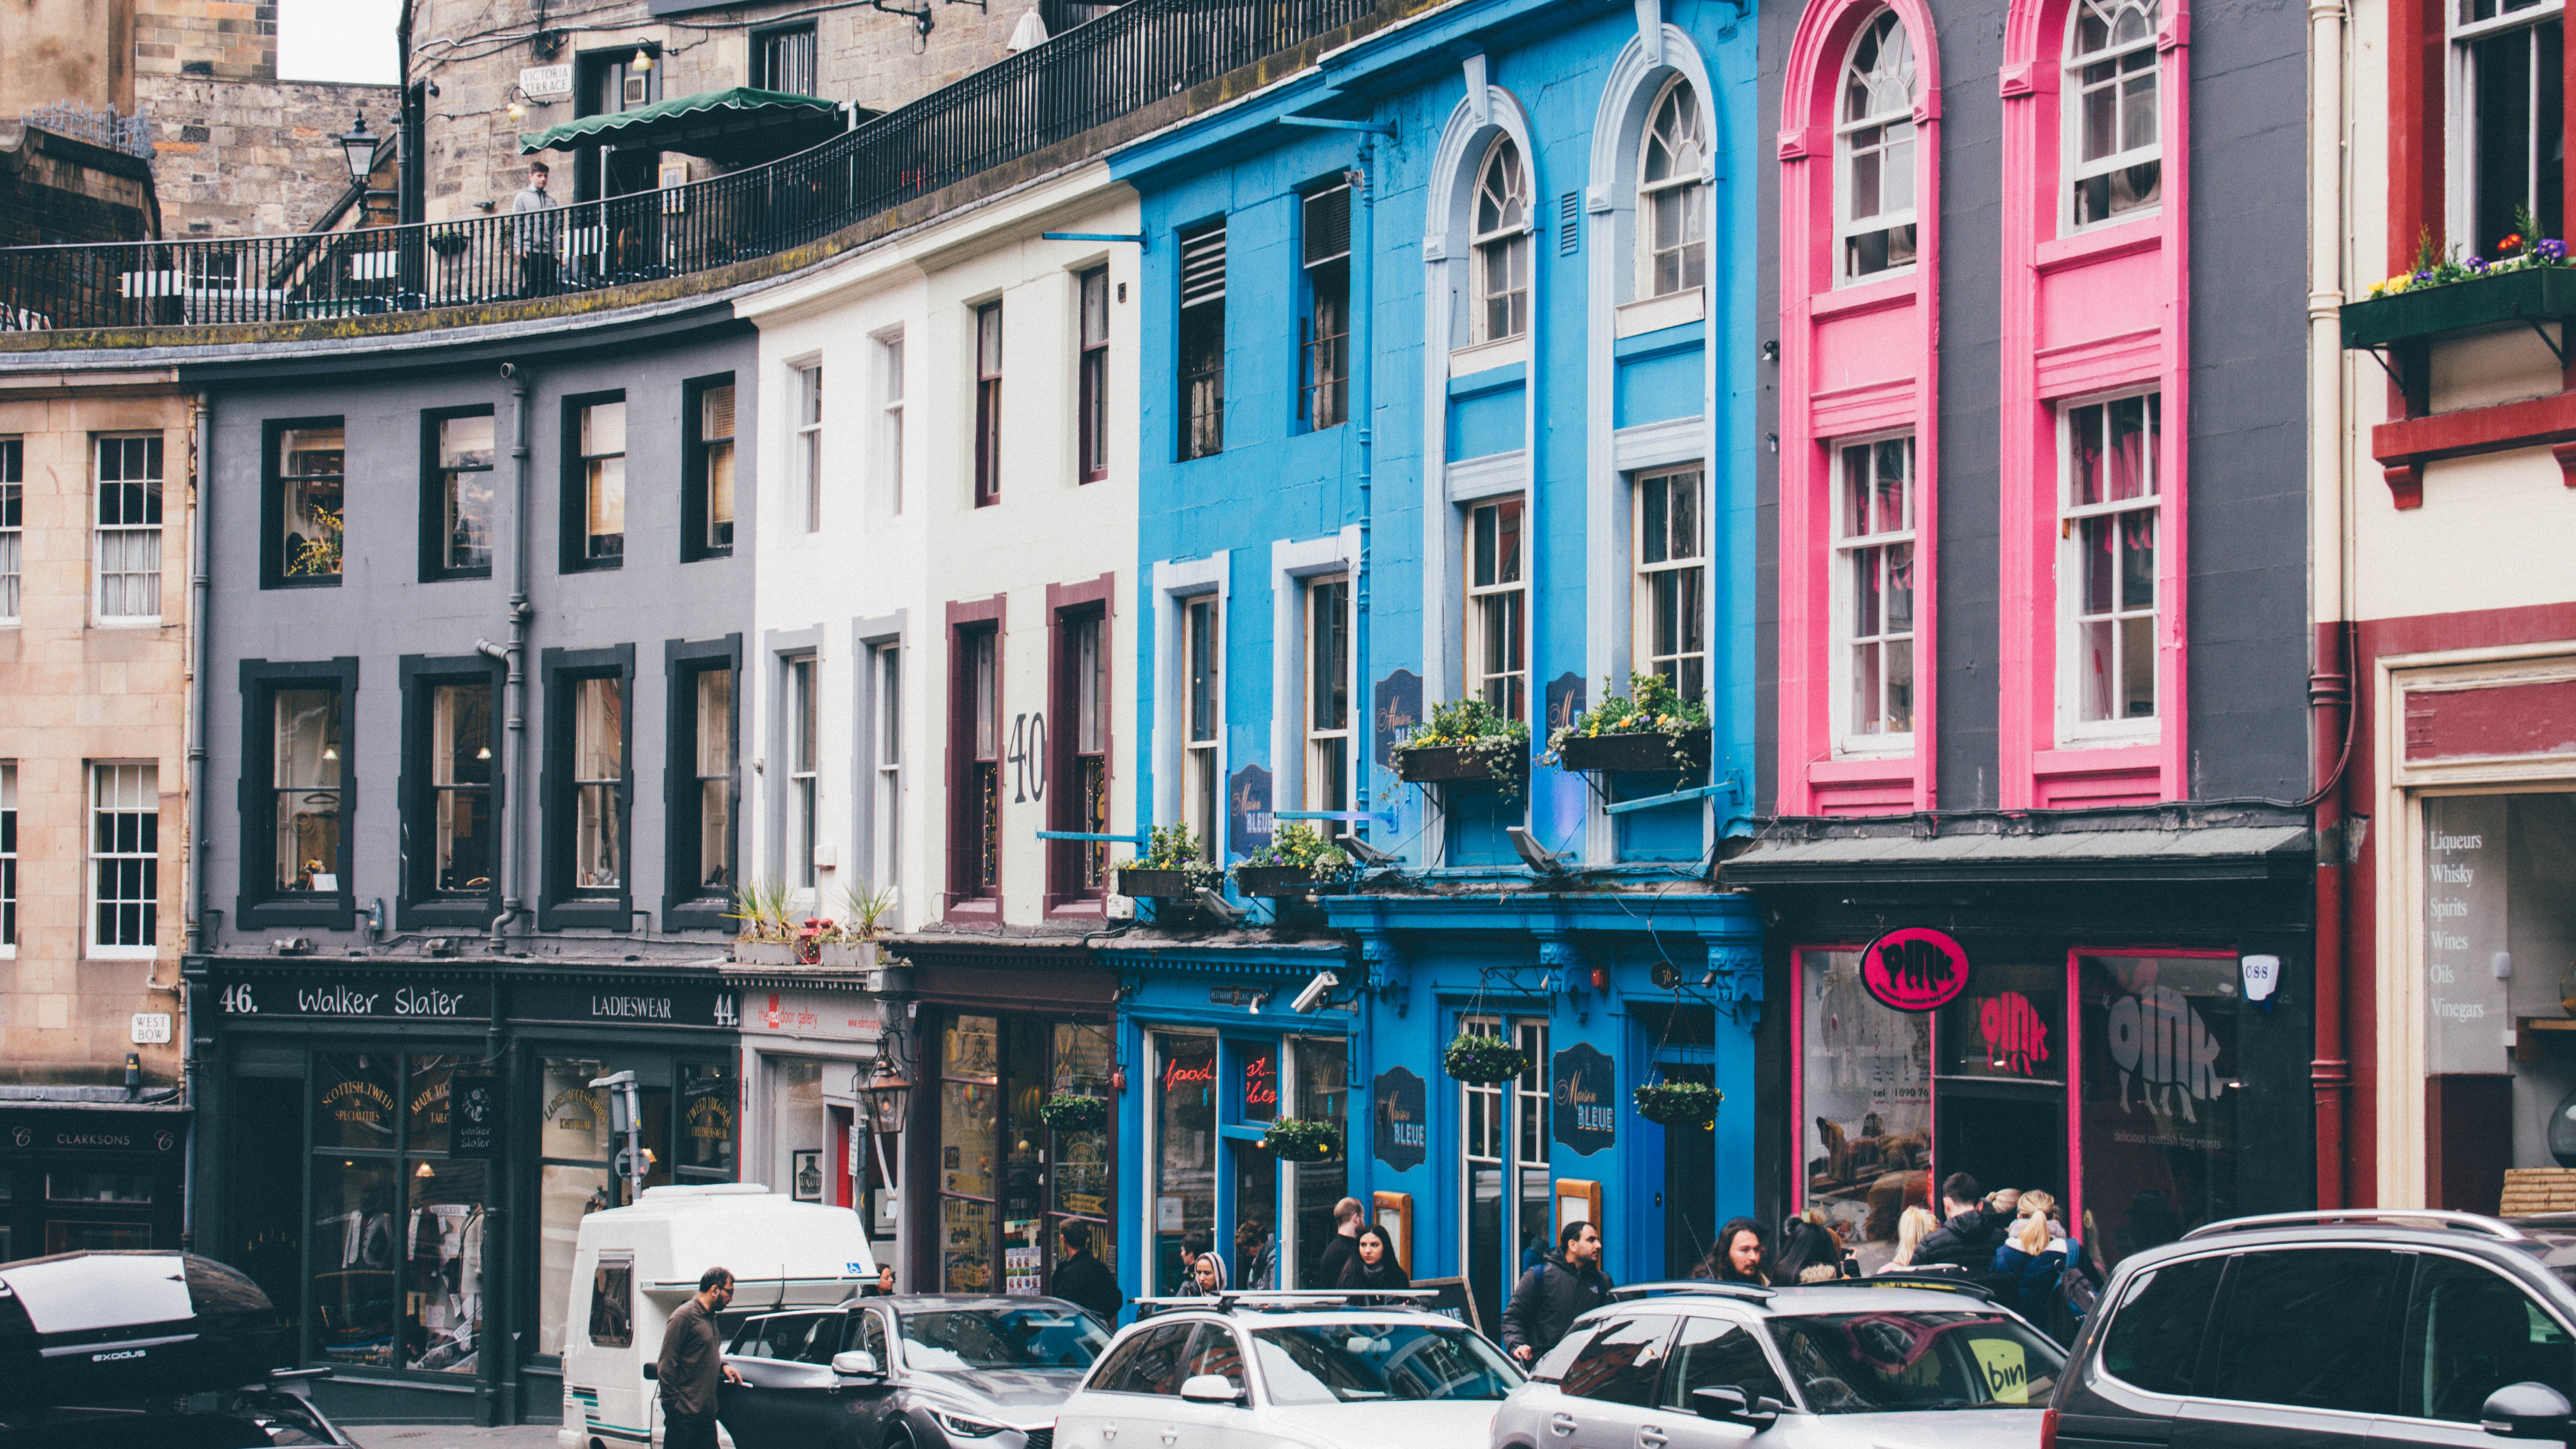 Foto: Victoria Street, Edinburgh, United Kingdom By  Jonathan Ricci On Unsplash.